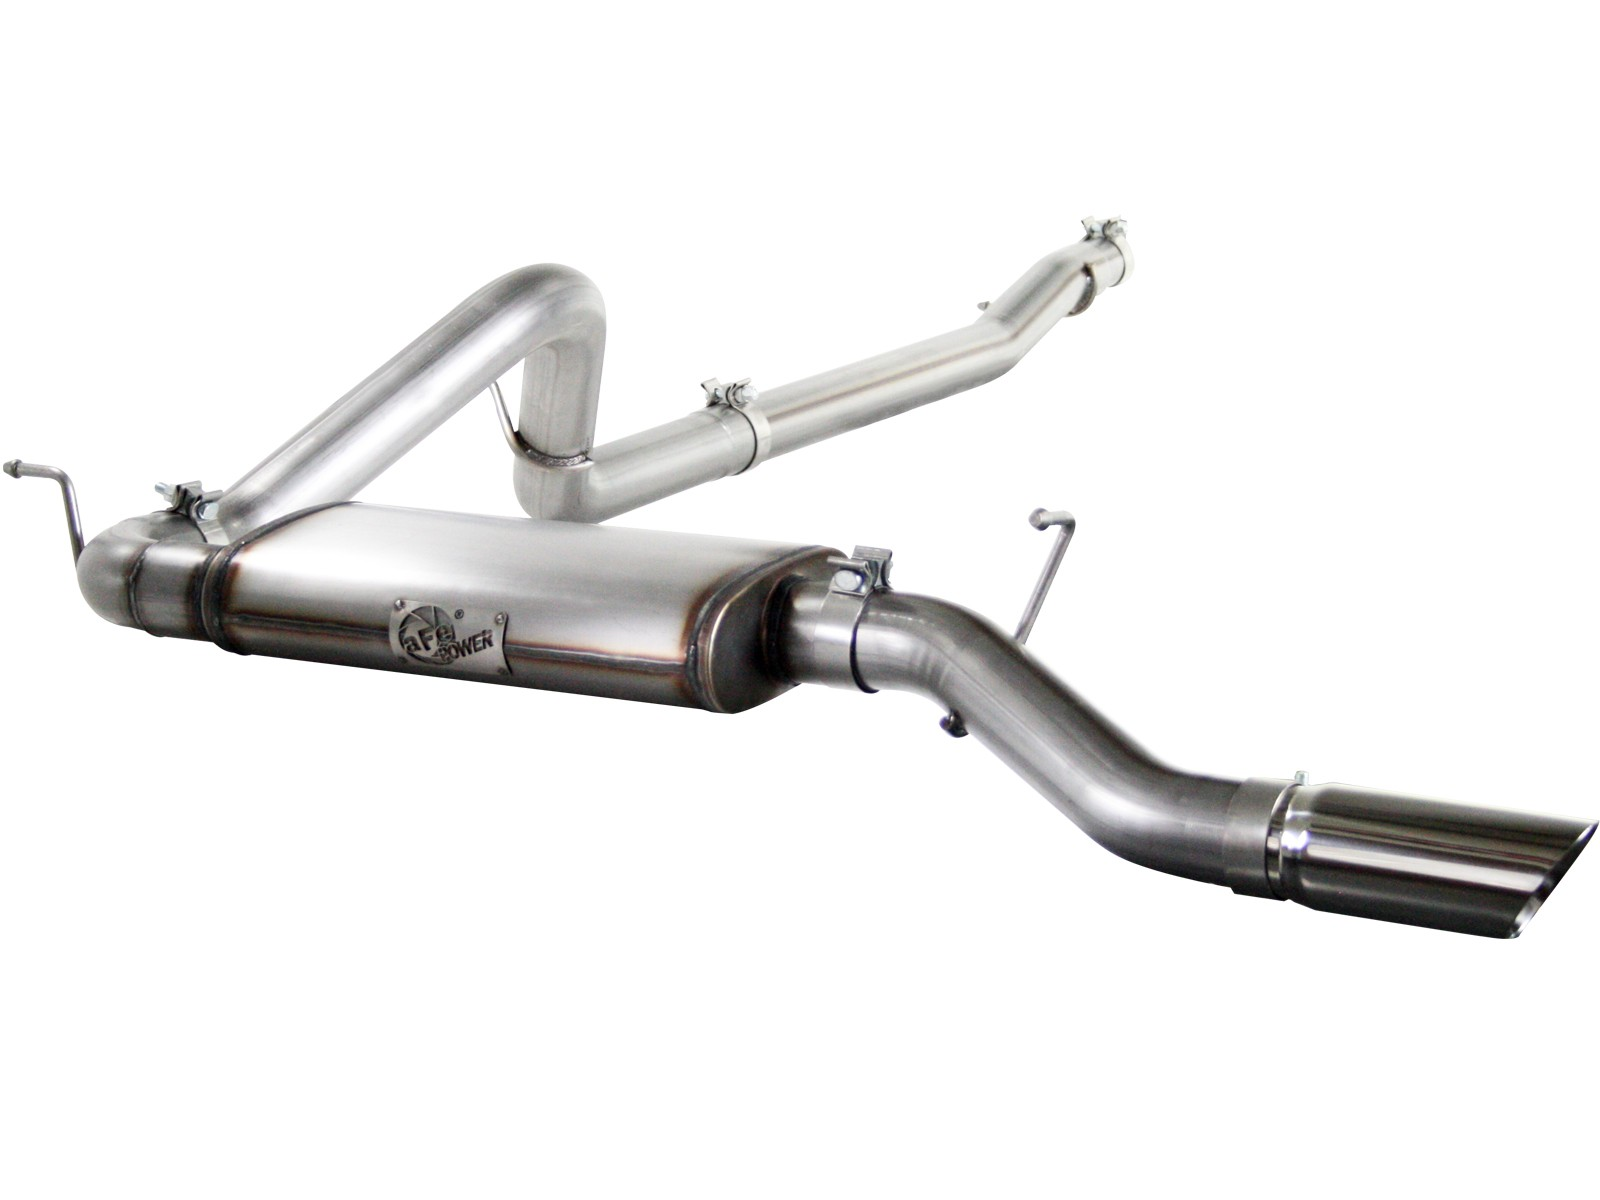 """aFe POWER 49-46213 MACH Force-Xp 3"""" 409 Stainless Steel Cat-Back Exhaust System"""